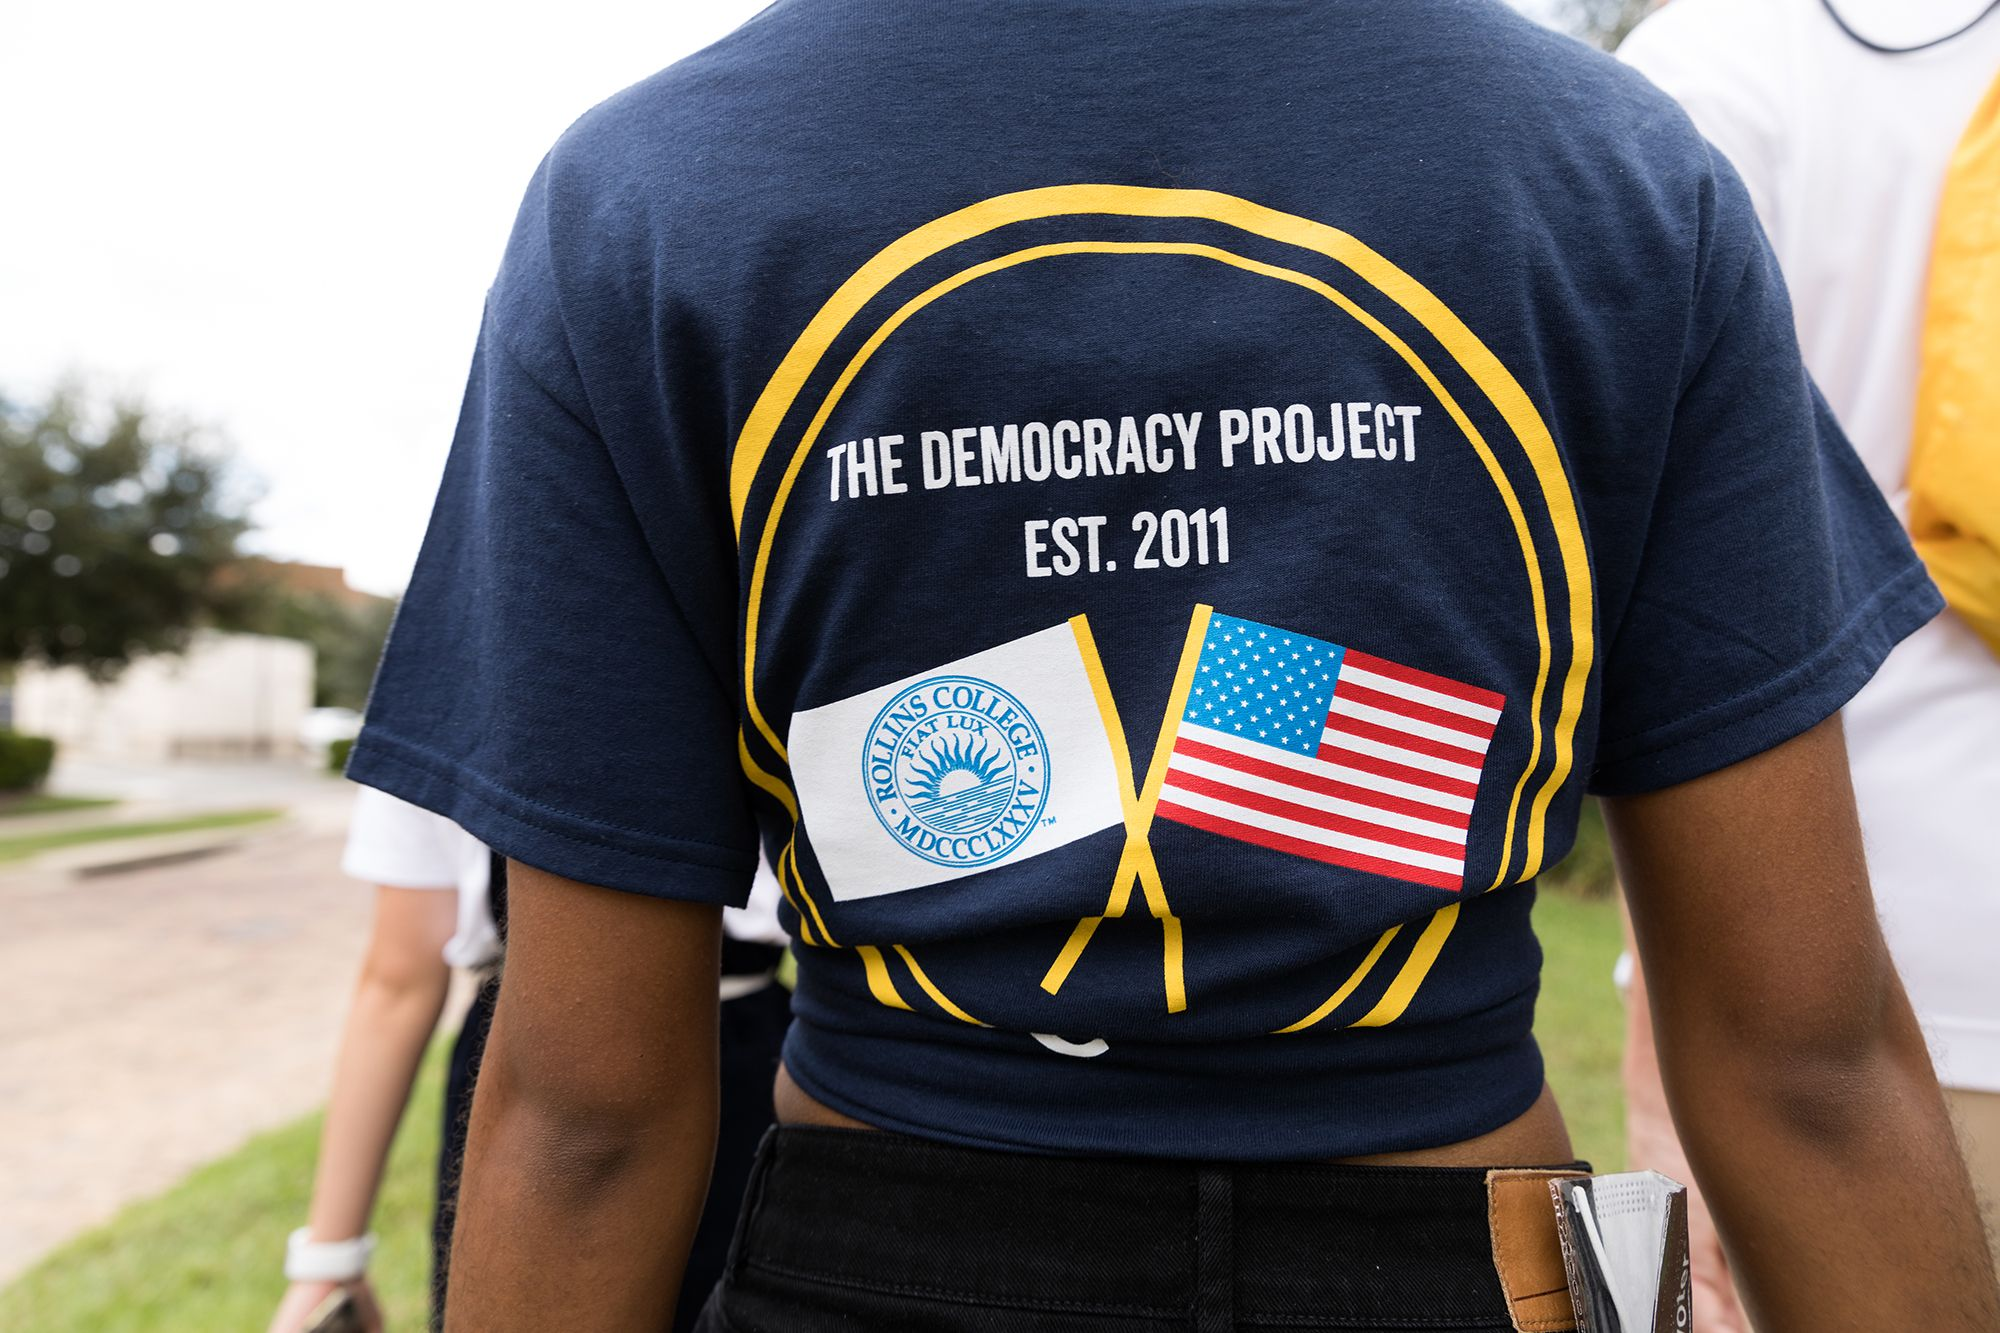 A student sporting a Democracy Project T-shirt on a walk to the polls to vote in the 2020 presidential election.